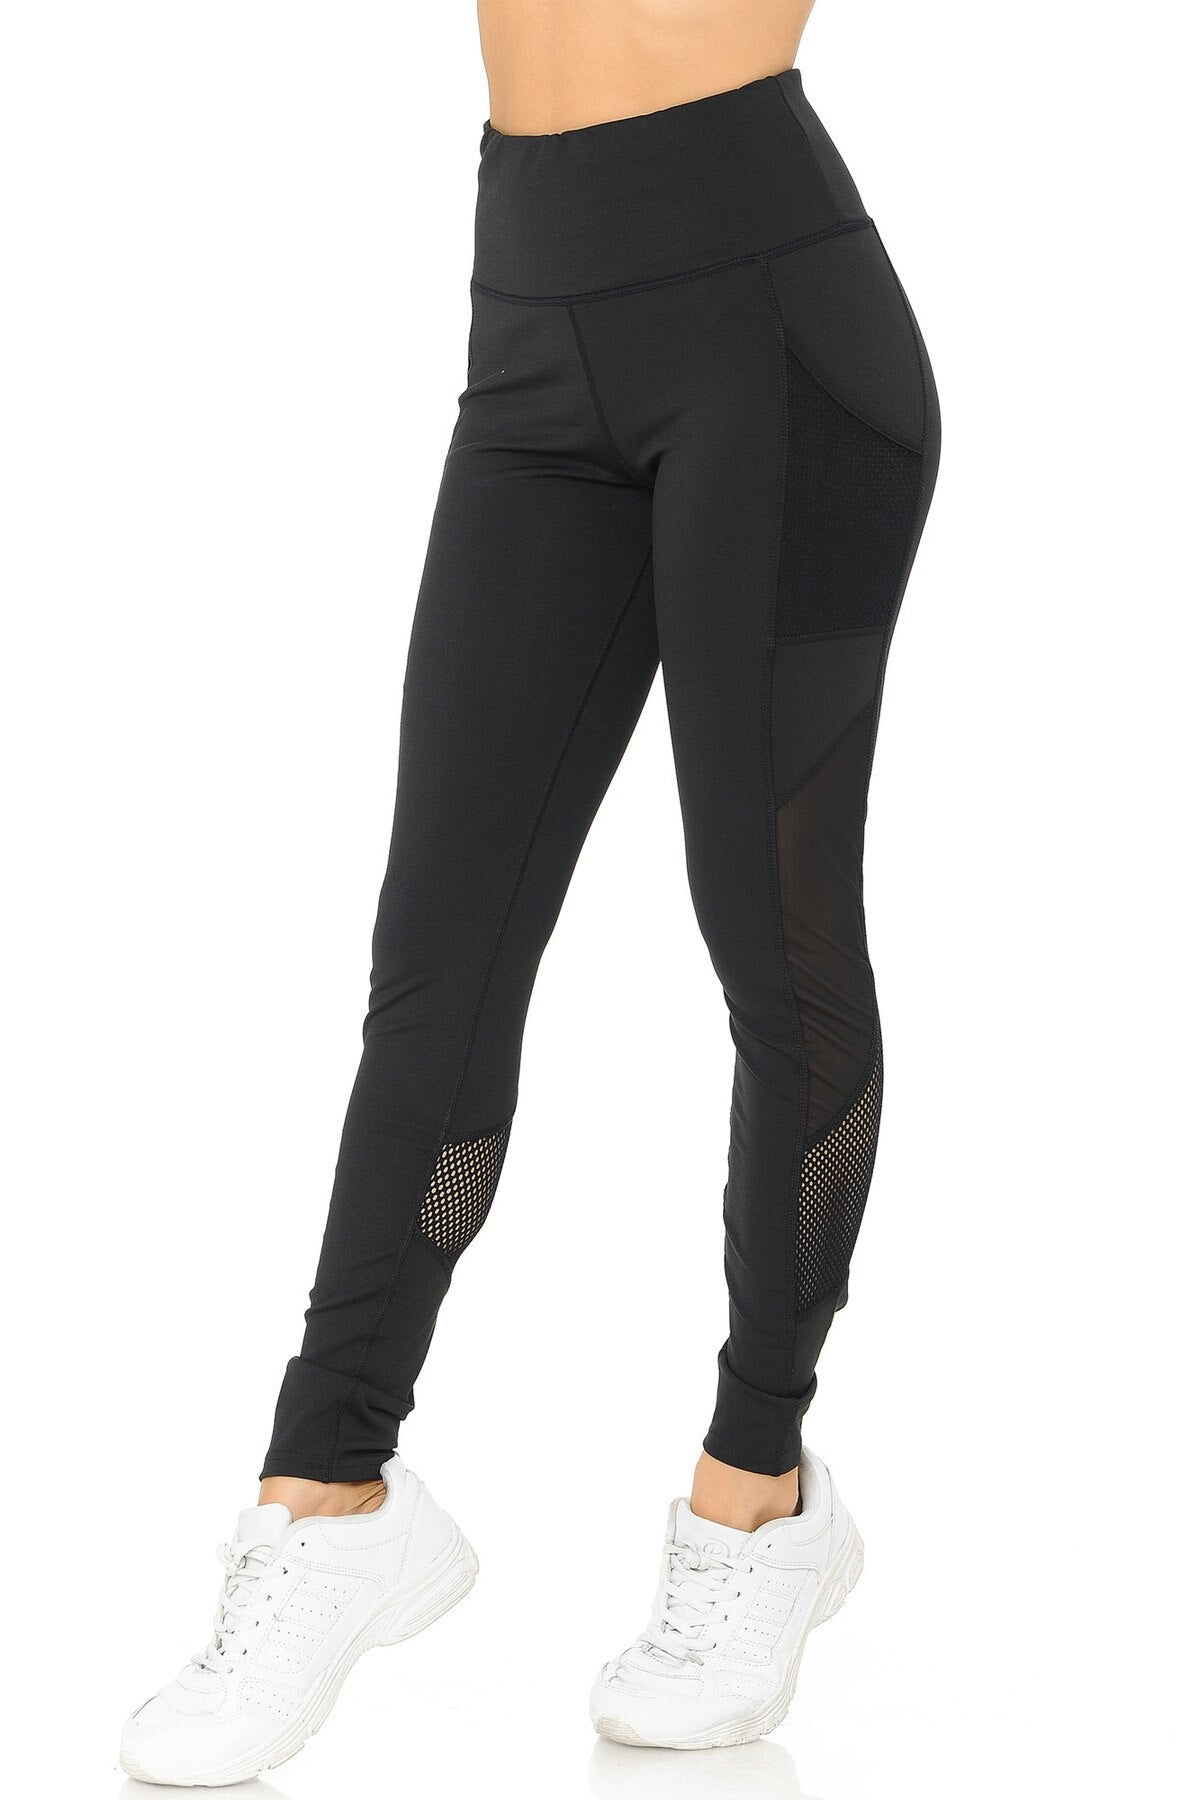 MAXIMUM SPORT LEGGINGS